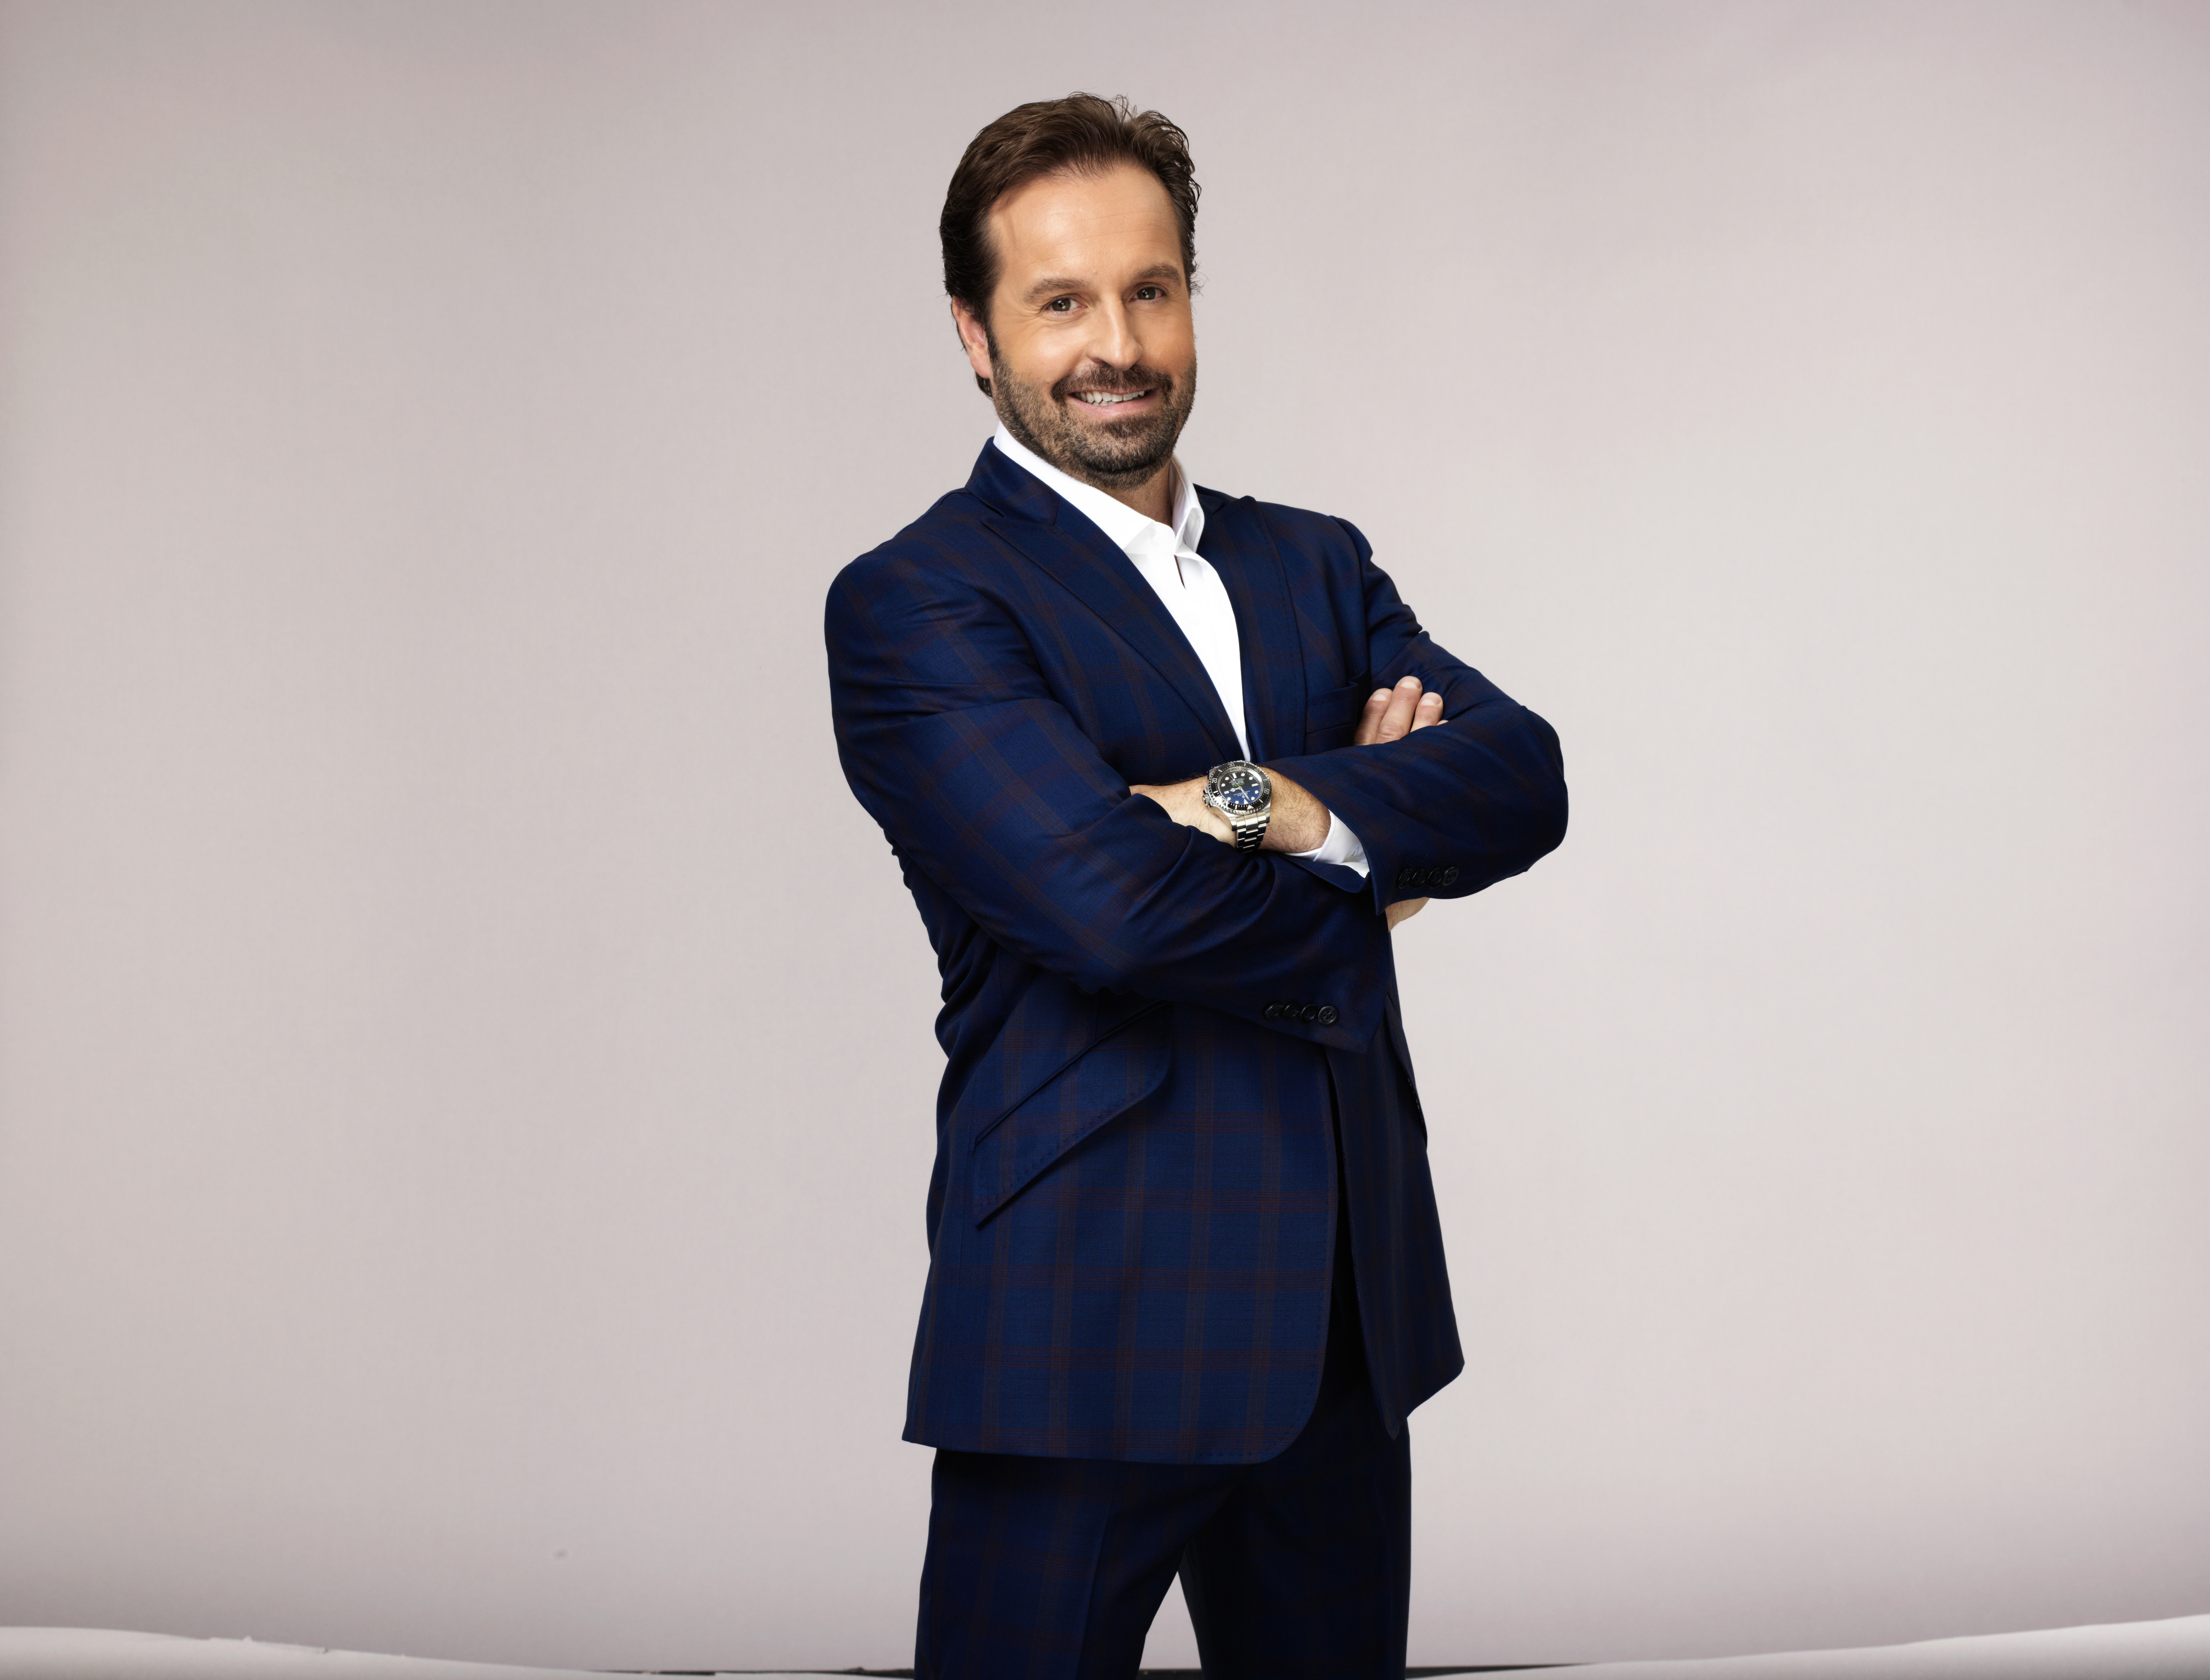 ALFIE BOE WILL BE PERFORMING LIVE  IN THE UK THIS SUMMER!